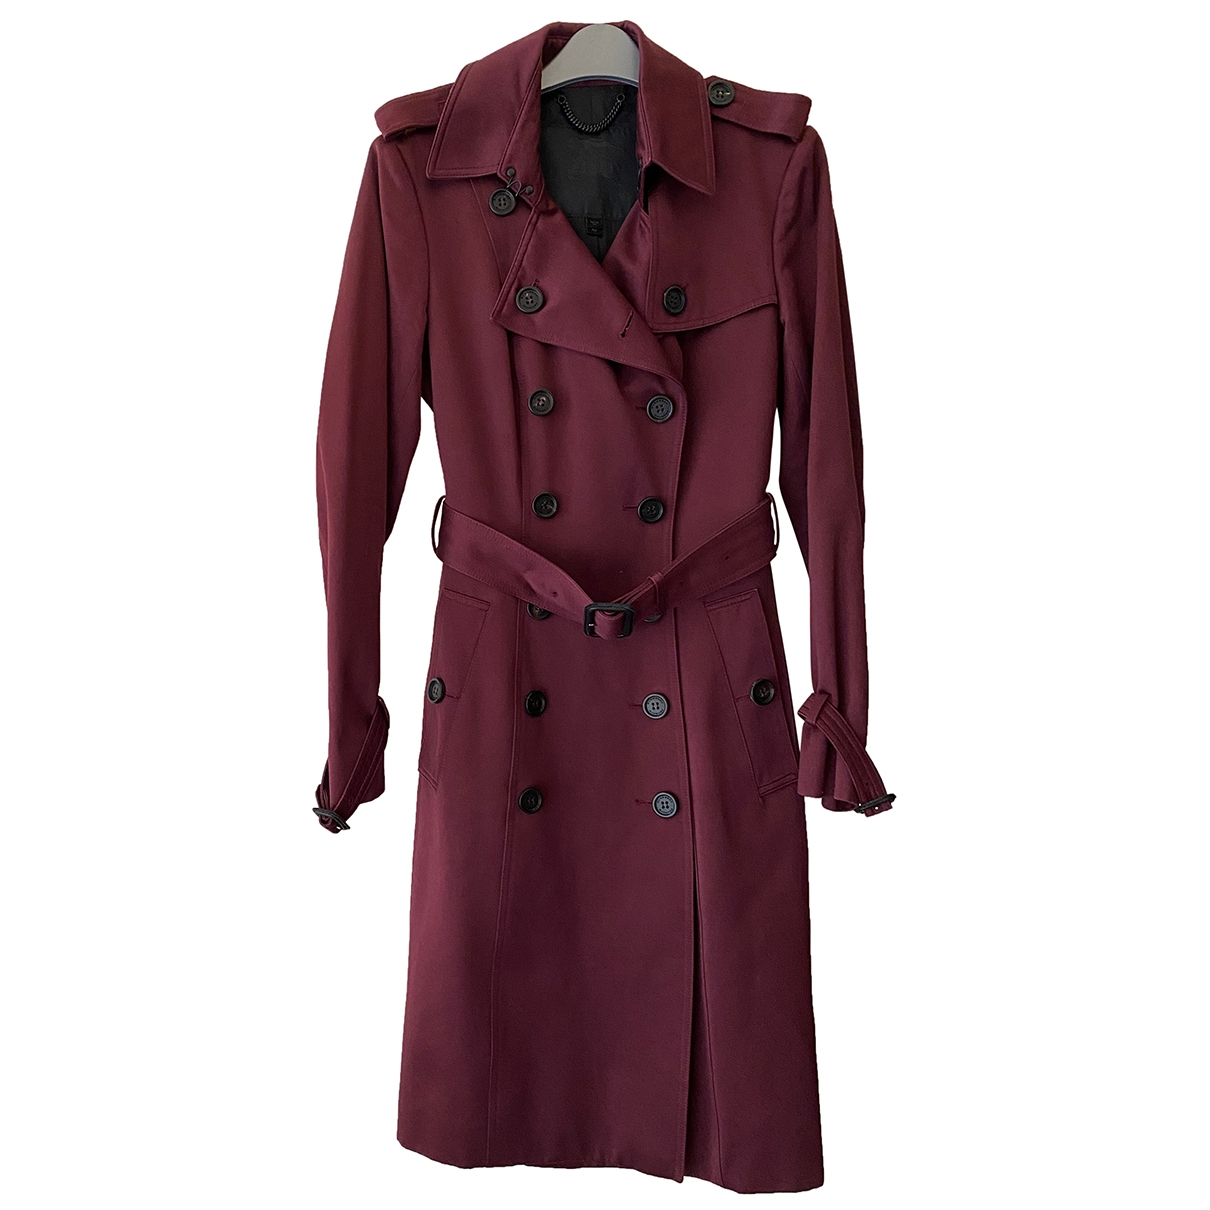 Burberry \N Burgundy Cotton Trench coat for Women 42 IT